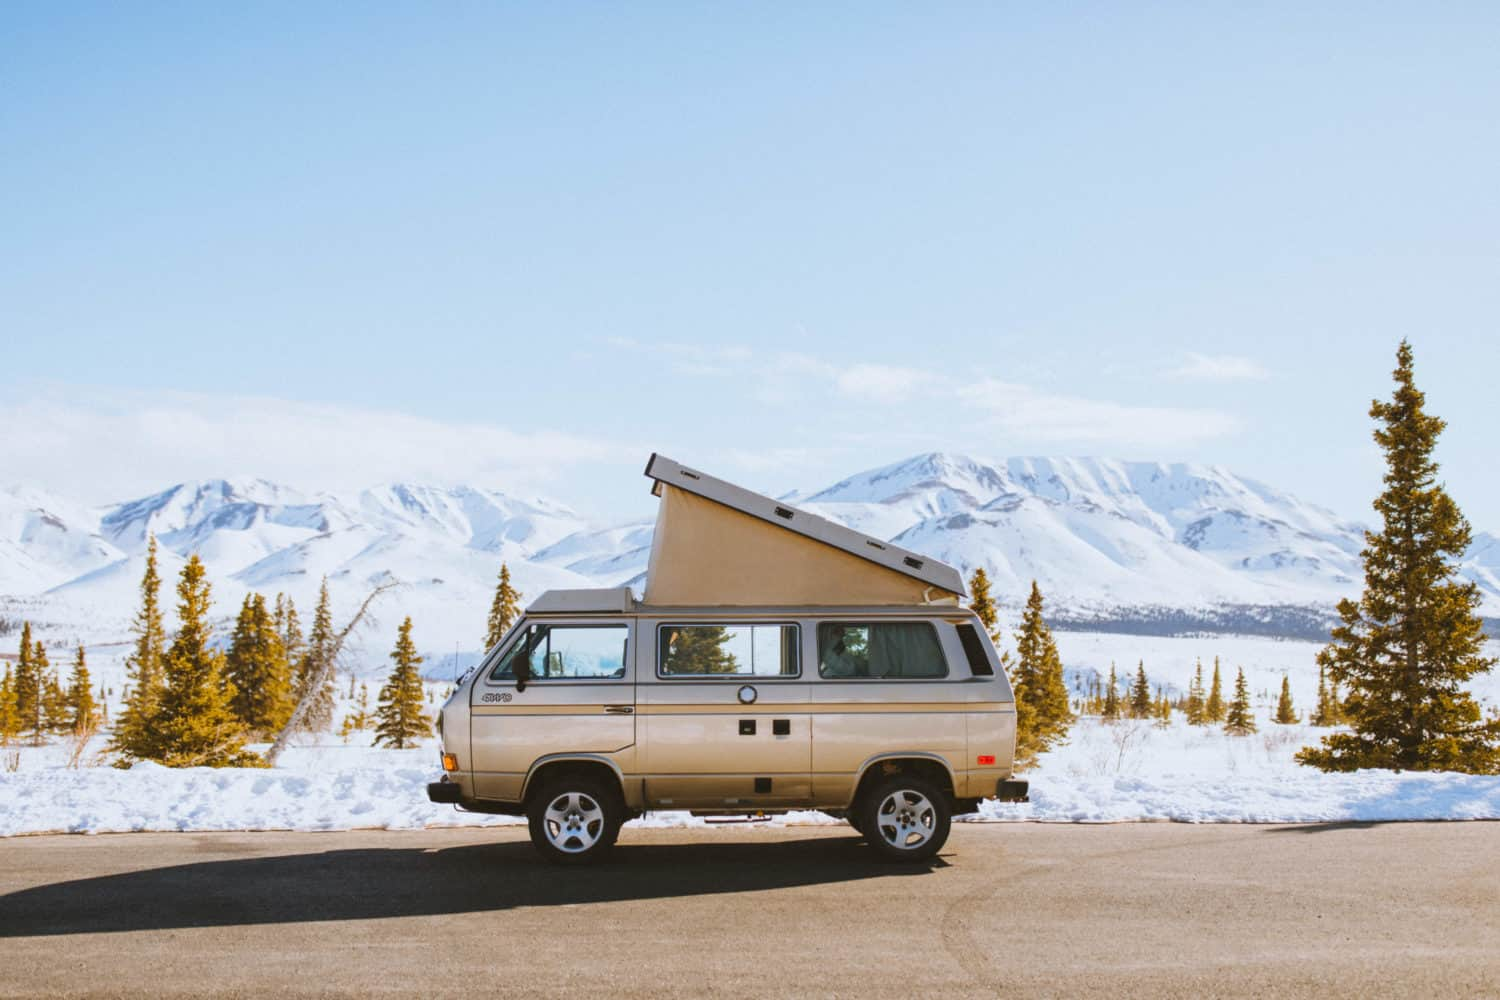 VW Westfalia van camping in Denali National Park, Alaska